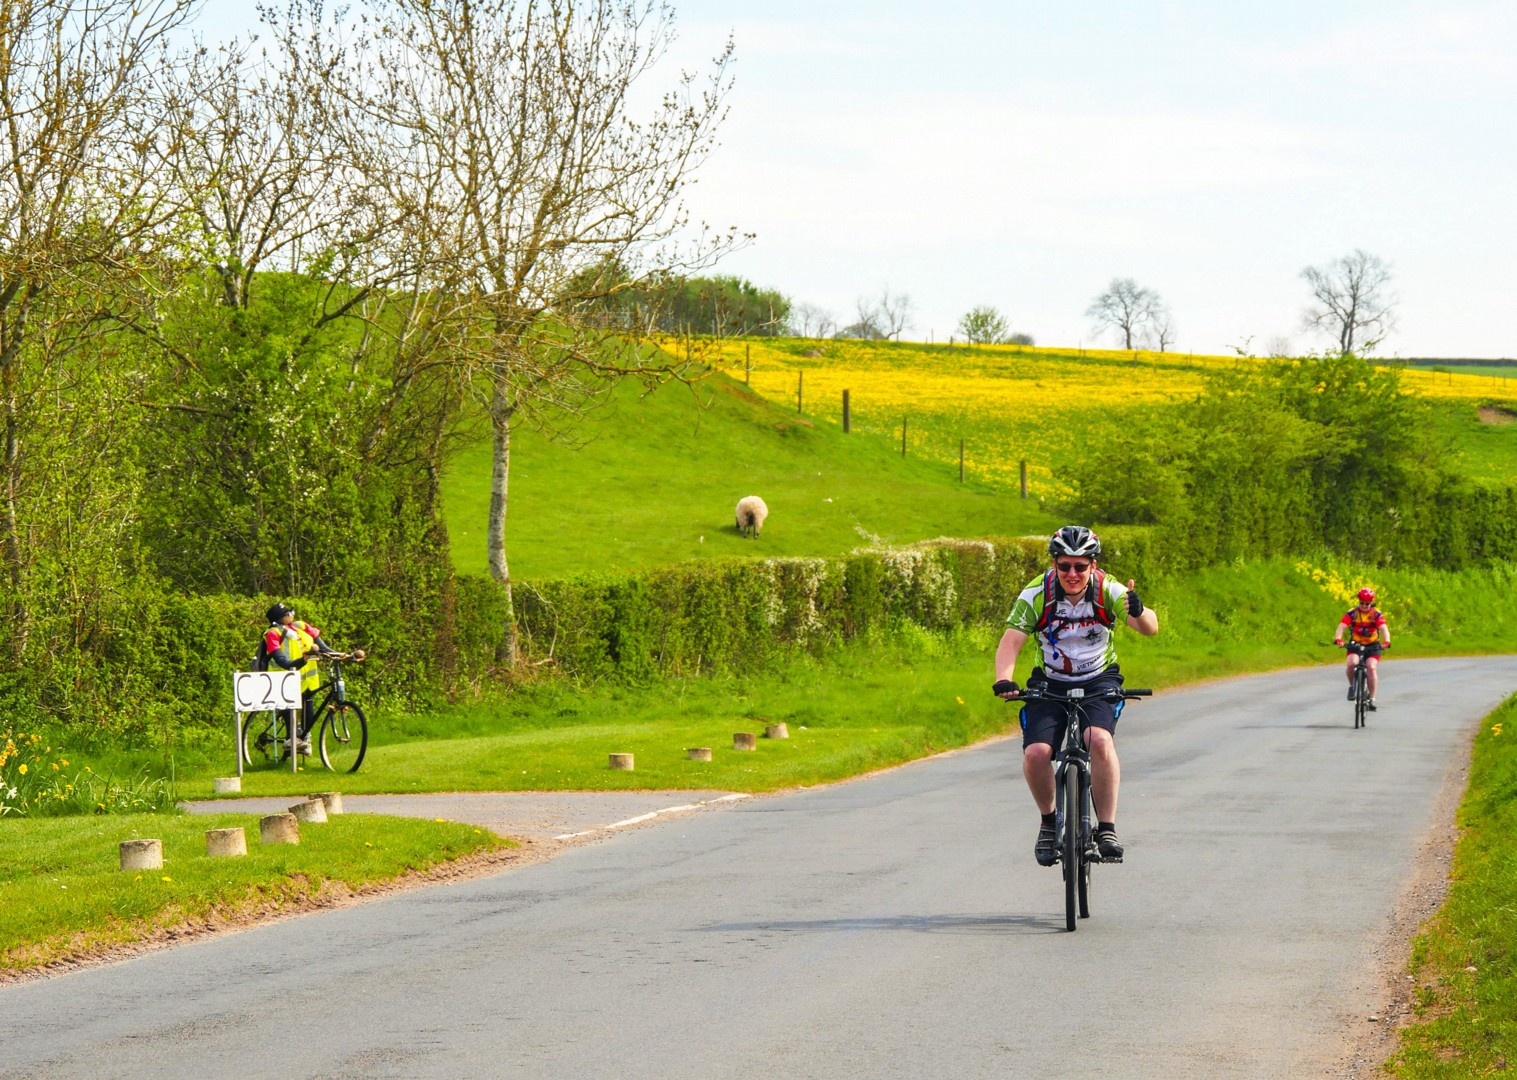 british-fields-rural-cyclepaths-bike-leisure-self-guided-green.jpg - UK - C2C - Coast to Coast 5 Days Cycling - Self-Guided Leisure Cycling Holiday - Leisure Cycling